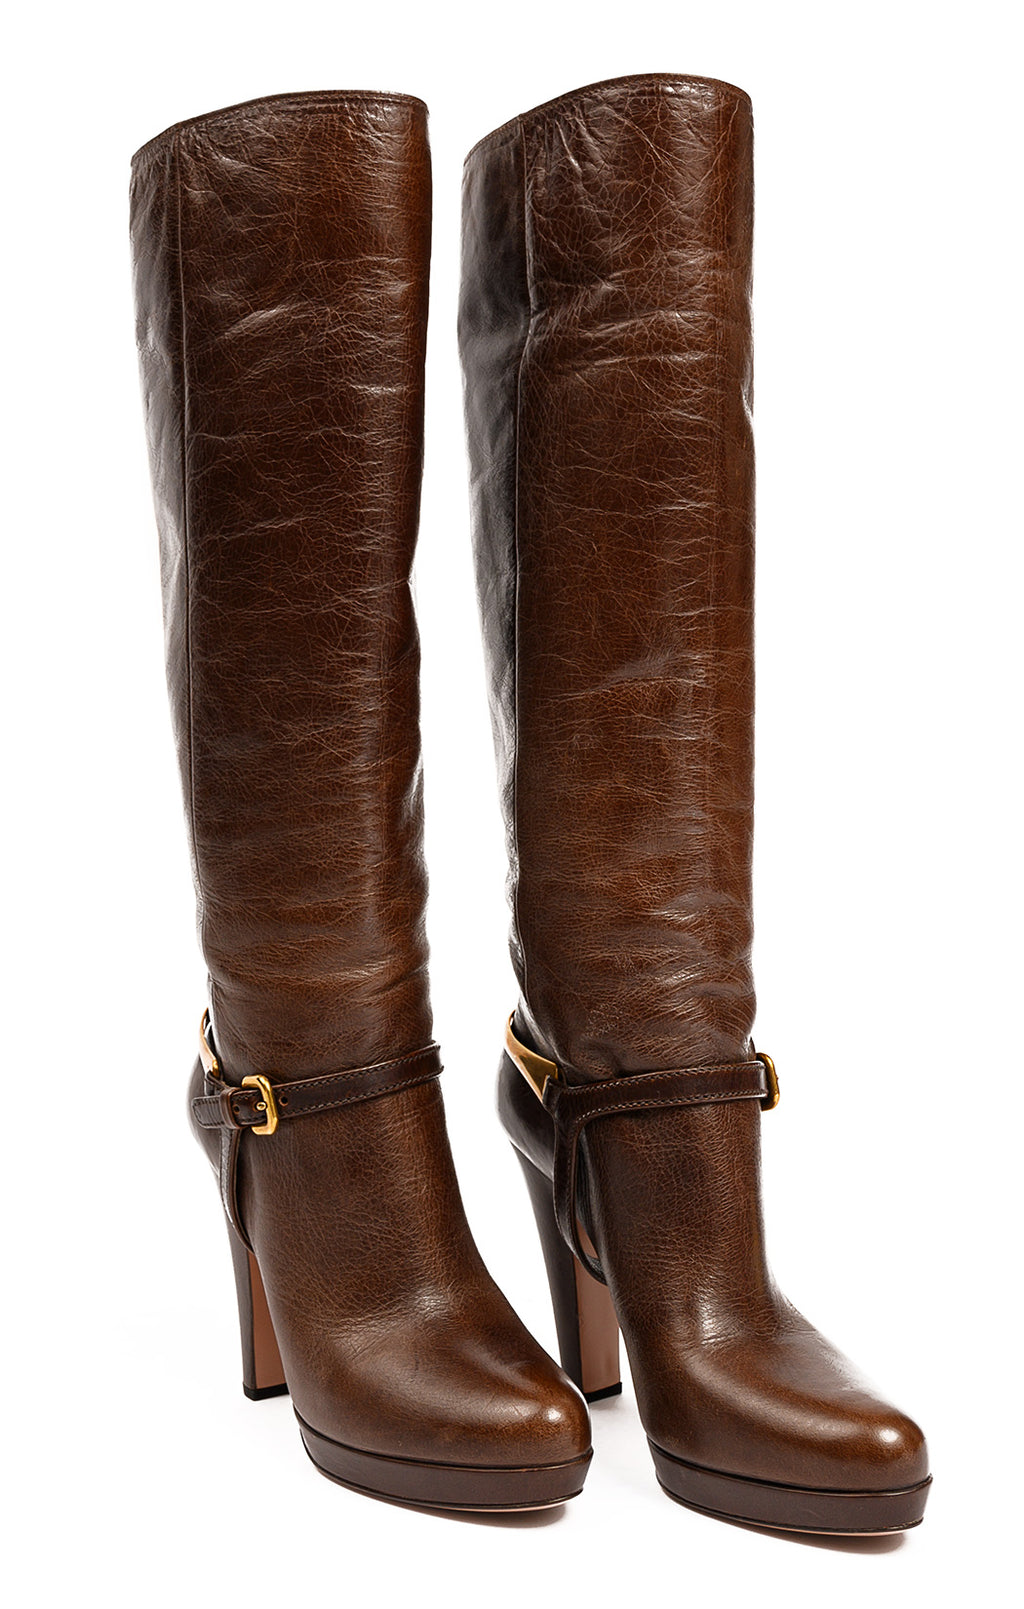 Front view of PRADA Boots Size: 39/9